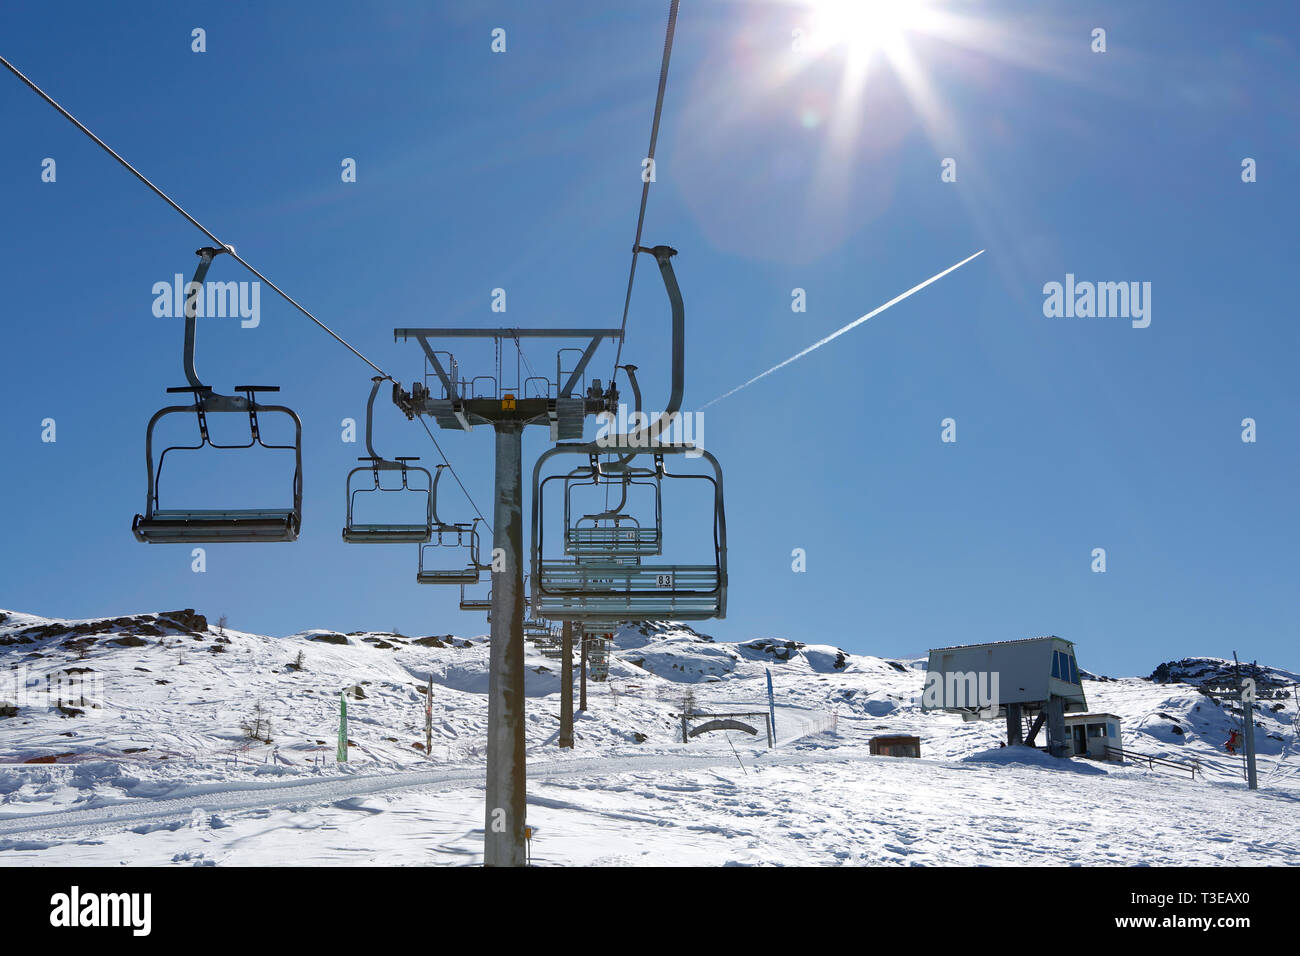 View from the chair lift, ski resort, San Martino di Castrozza, Trentino, Italy, Europe Stock Photo